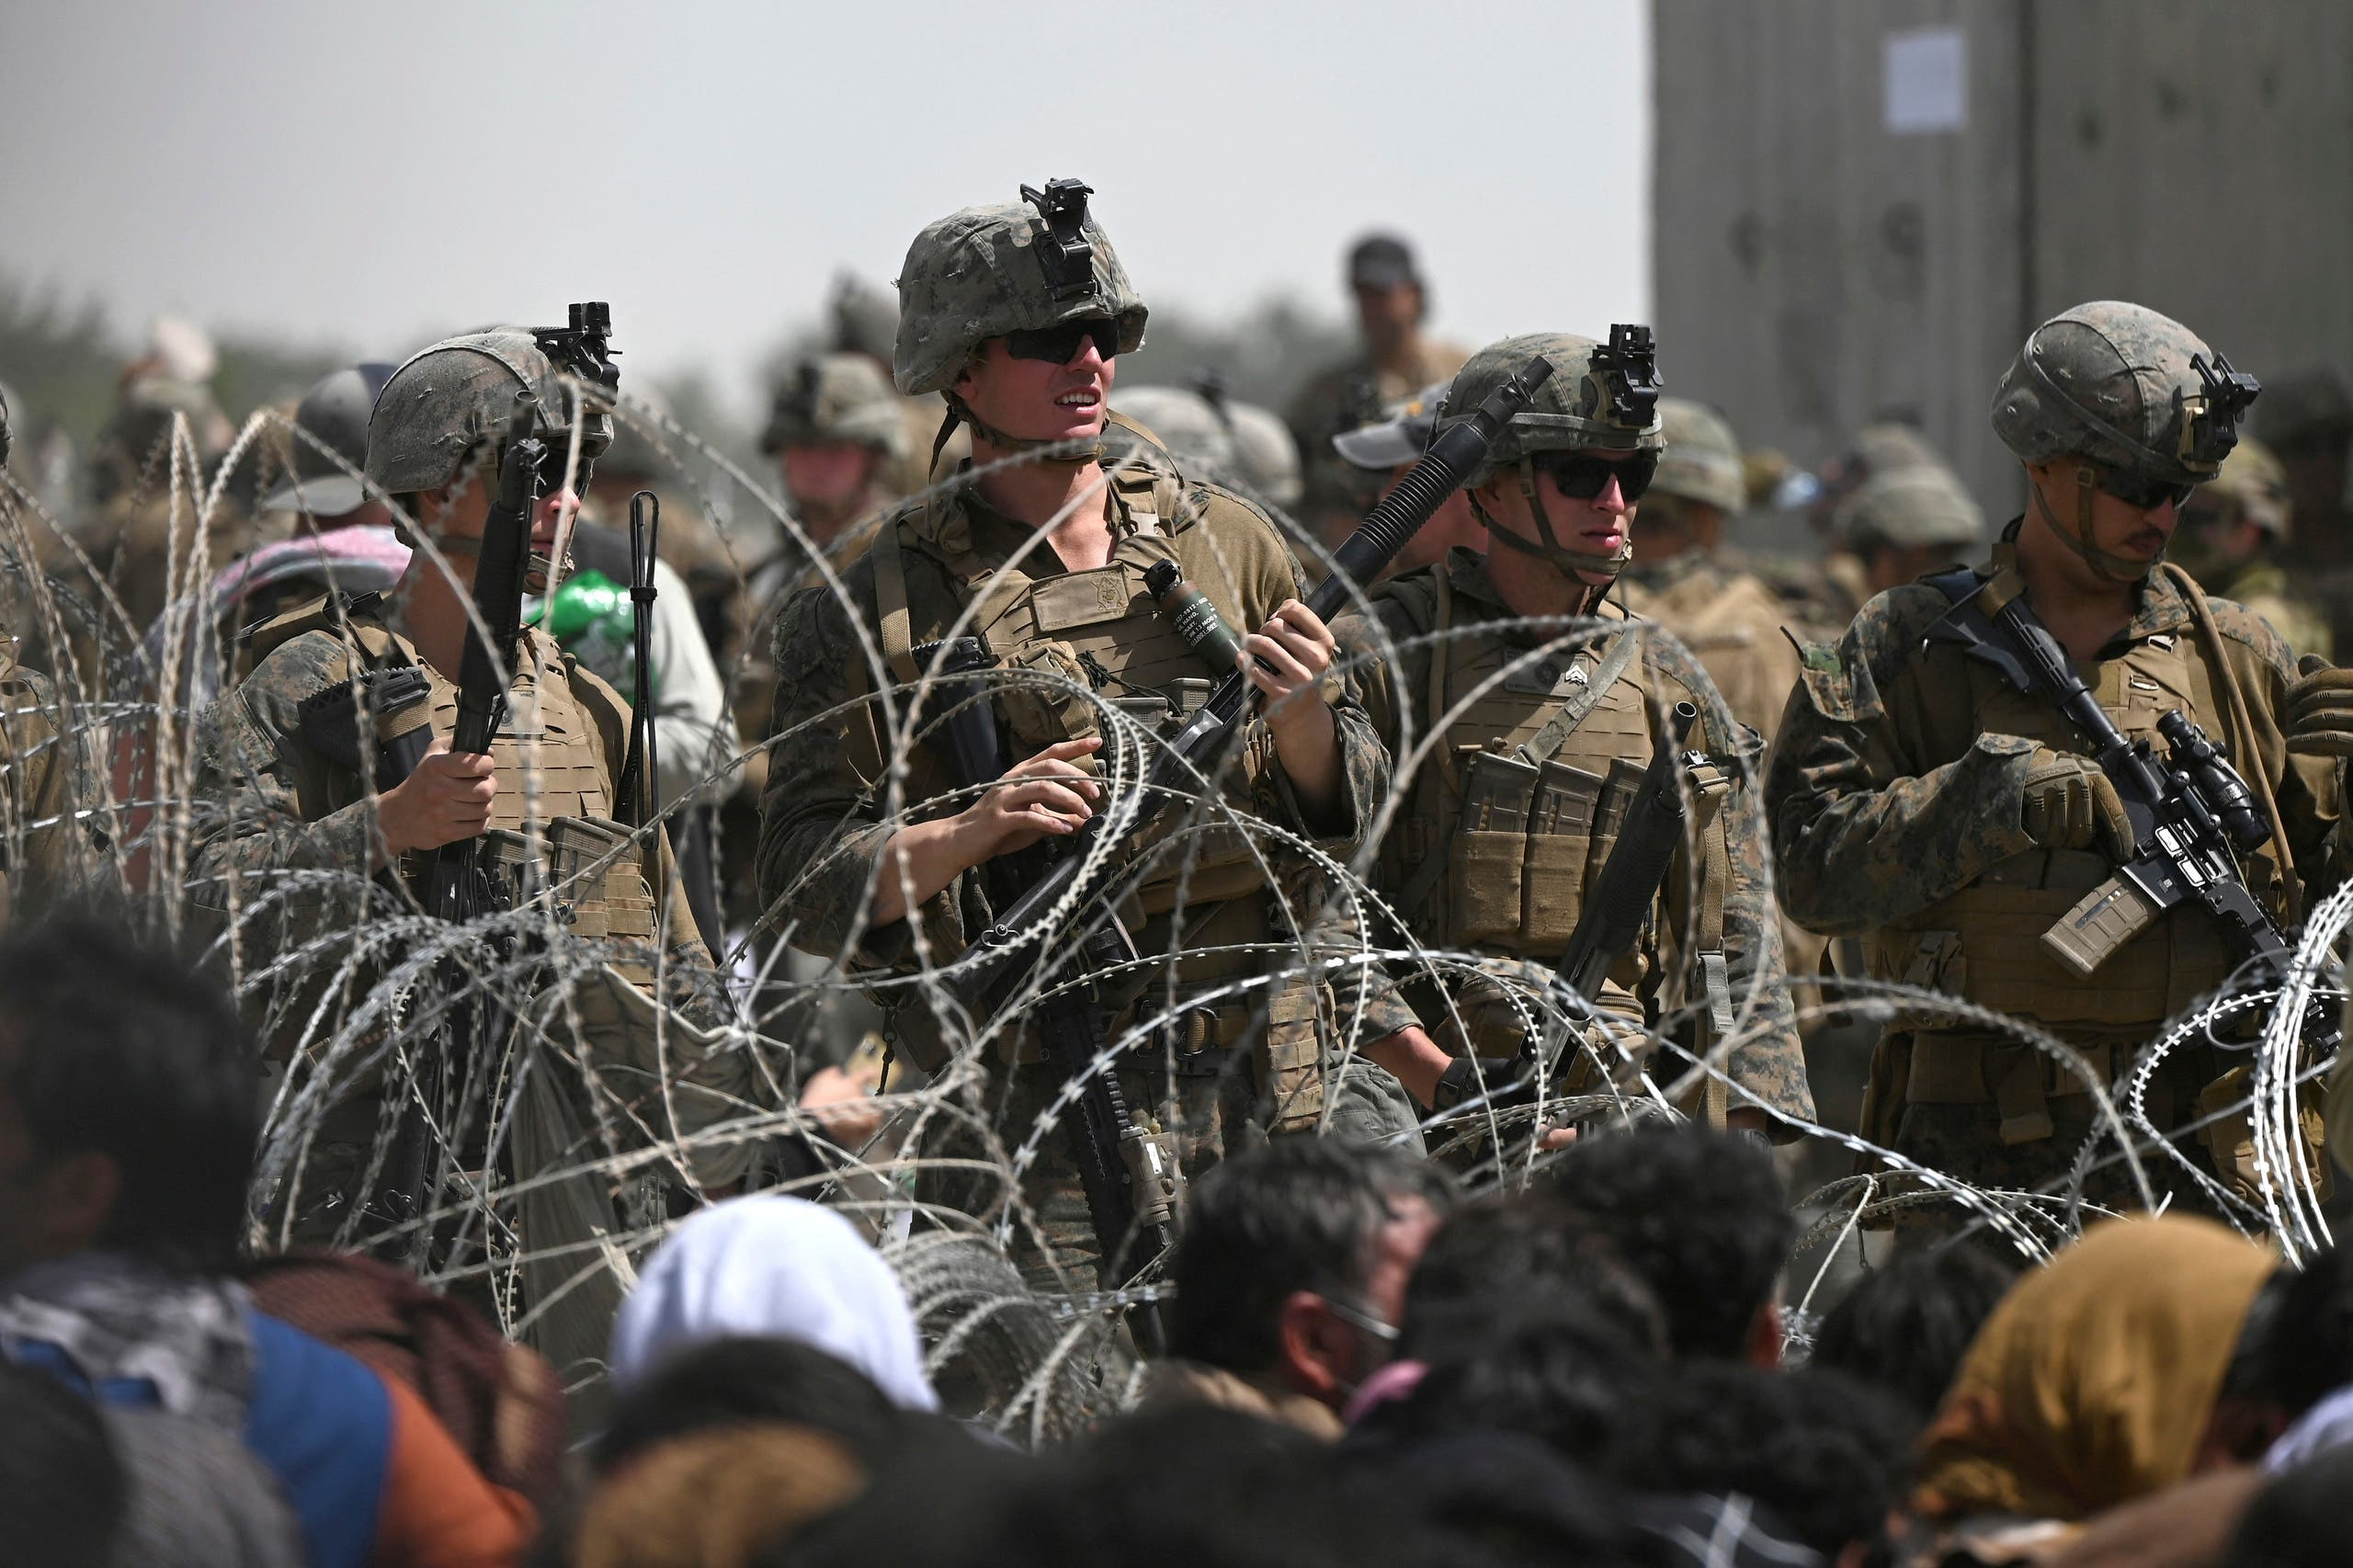 US soldiers stand guard behind barbed wire as Afghans sit on a roadside near the military part of the airport in Kabul on August 20, 2021, hoping to flee from the country after the Taliban's military takeover of Afghanistan. (AFP)